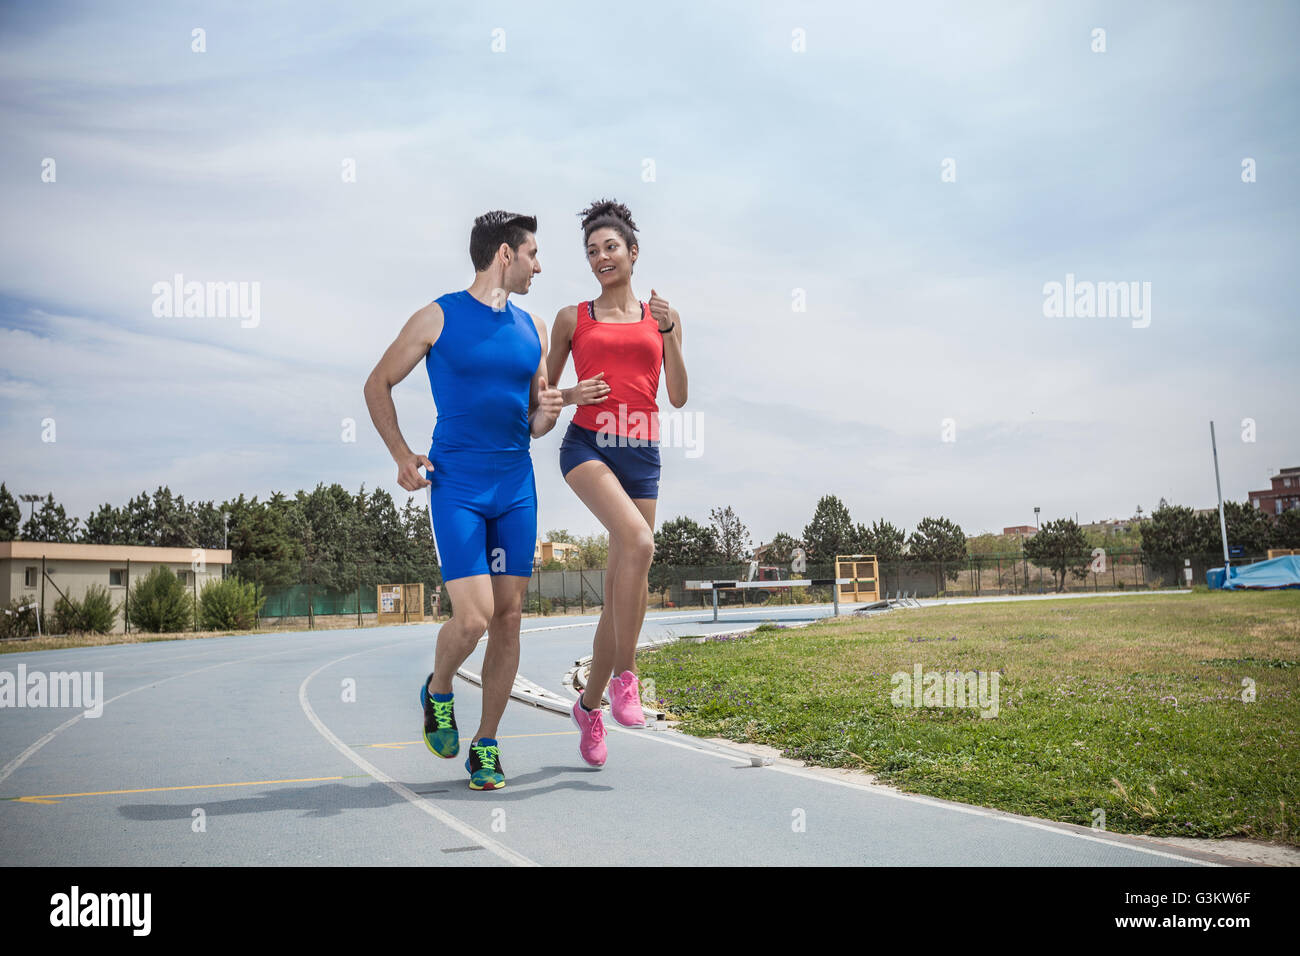 Young male and female runners training on running track - Stock Image